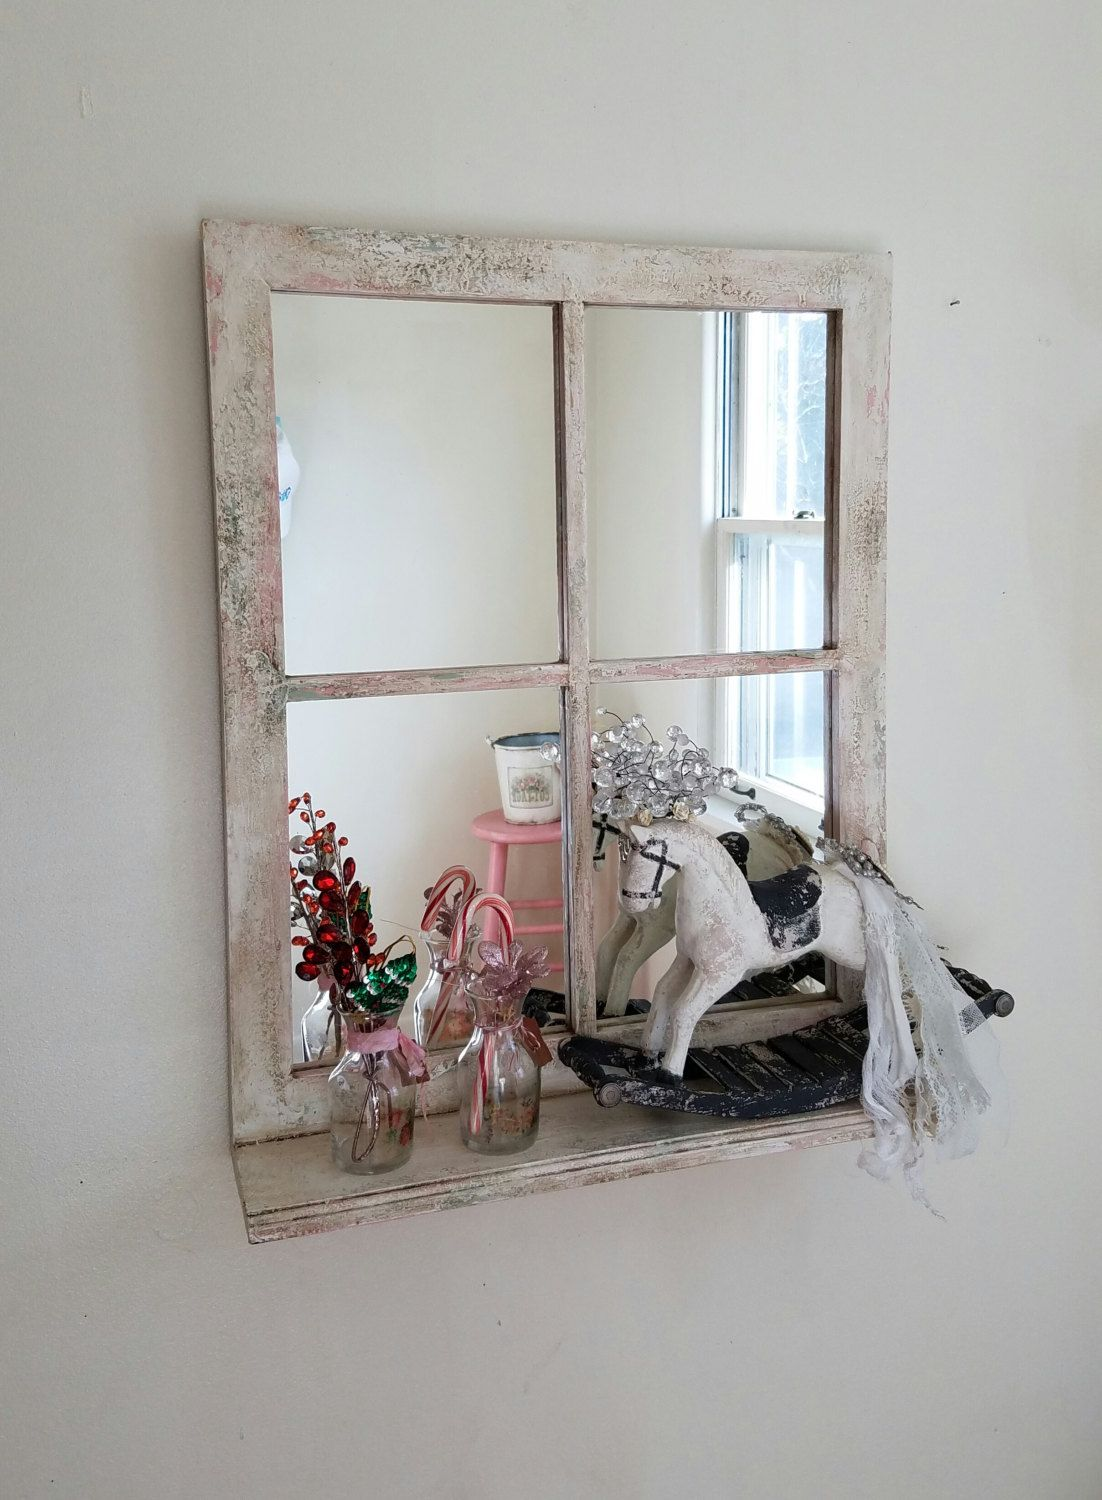 Window Pane Mirror With shelf Decorative Mirror Shabby Cottage Distressed hand Painted Home Decor by TheVintageStories on Etsy